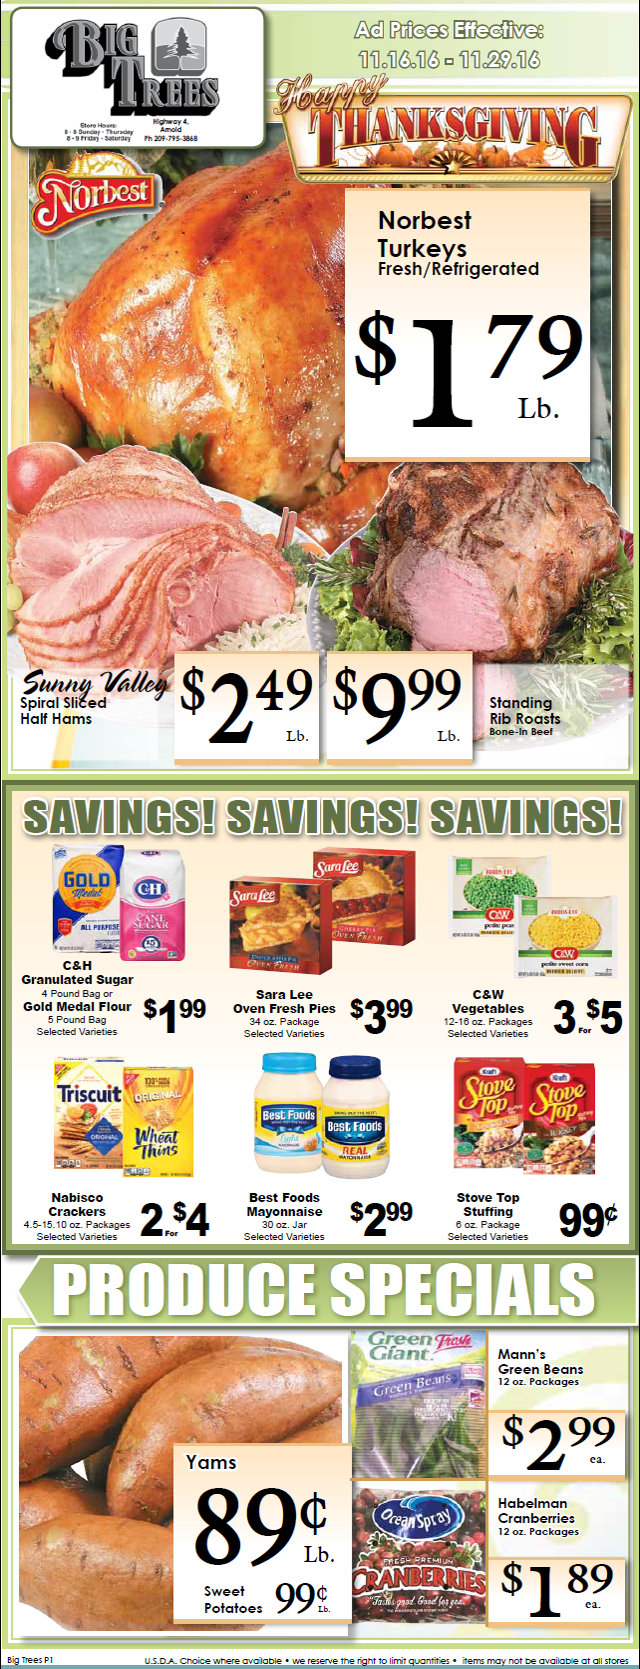 Big Trees Market Weekly Ad & Specials Through November 29th!  Shop Local For Your Thanksgiving Feast!!